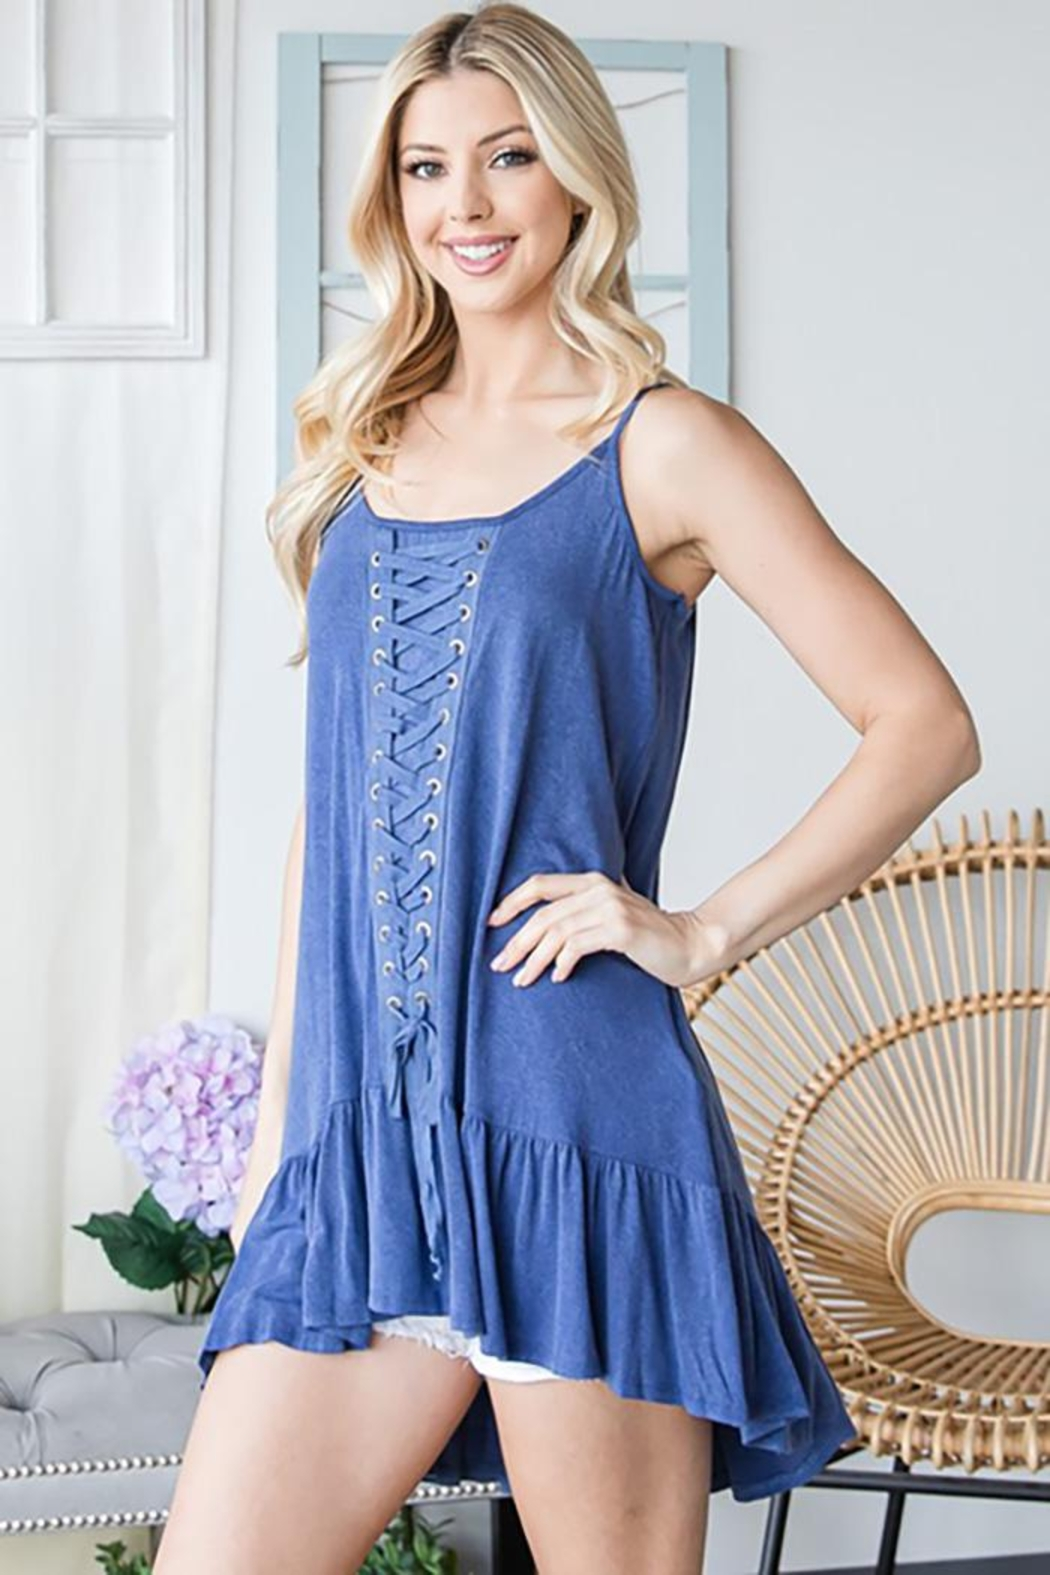 CY Fashion Lace Up Tiered Sleeveless Tank Top - Main Image